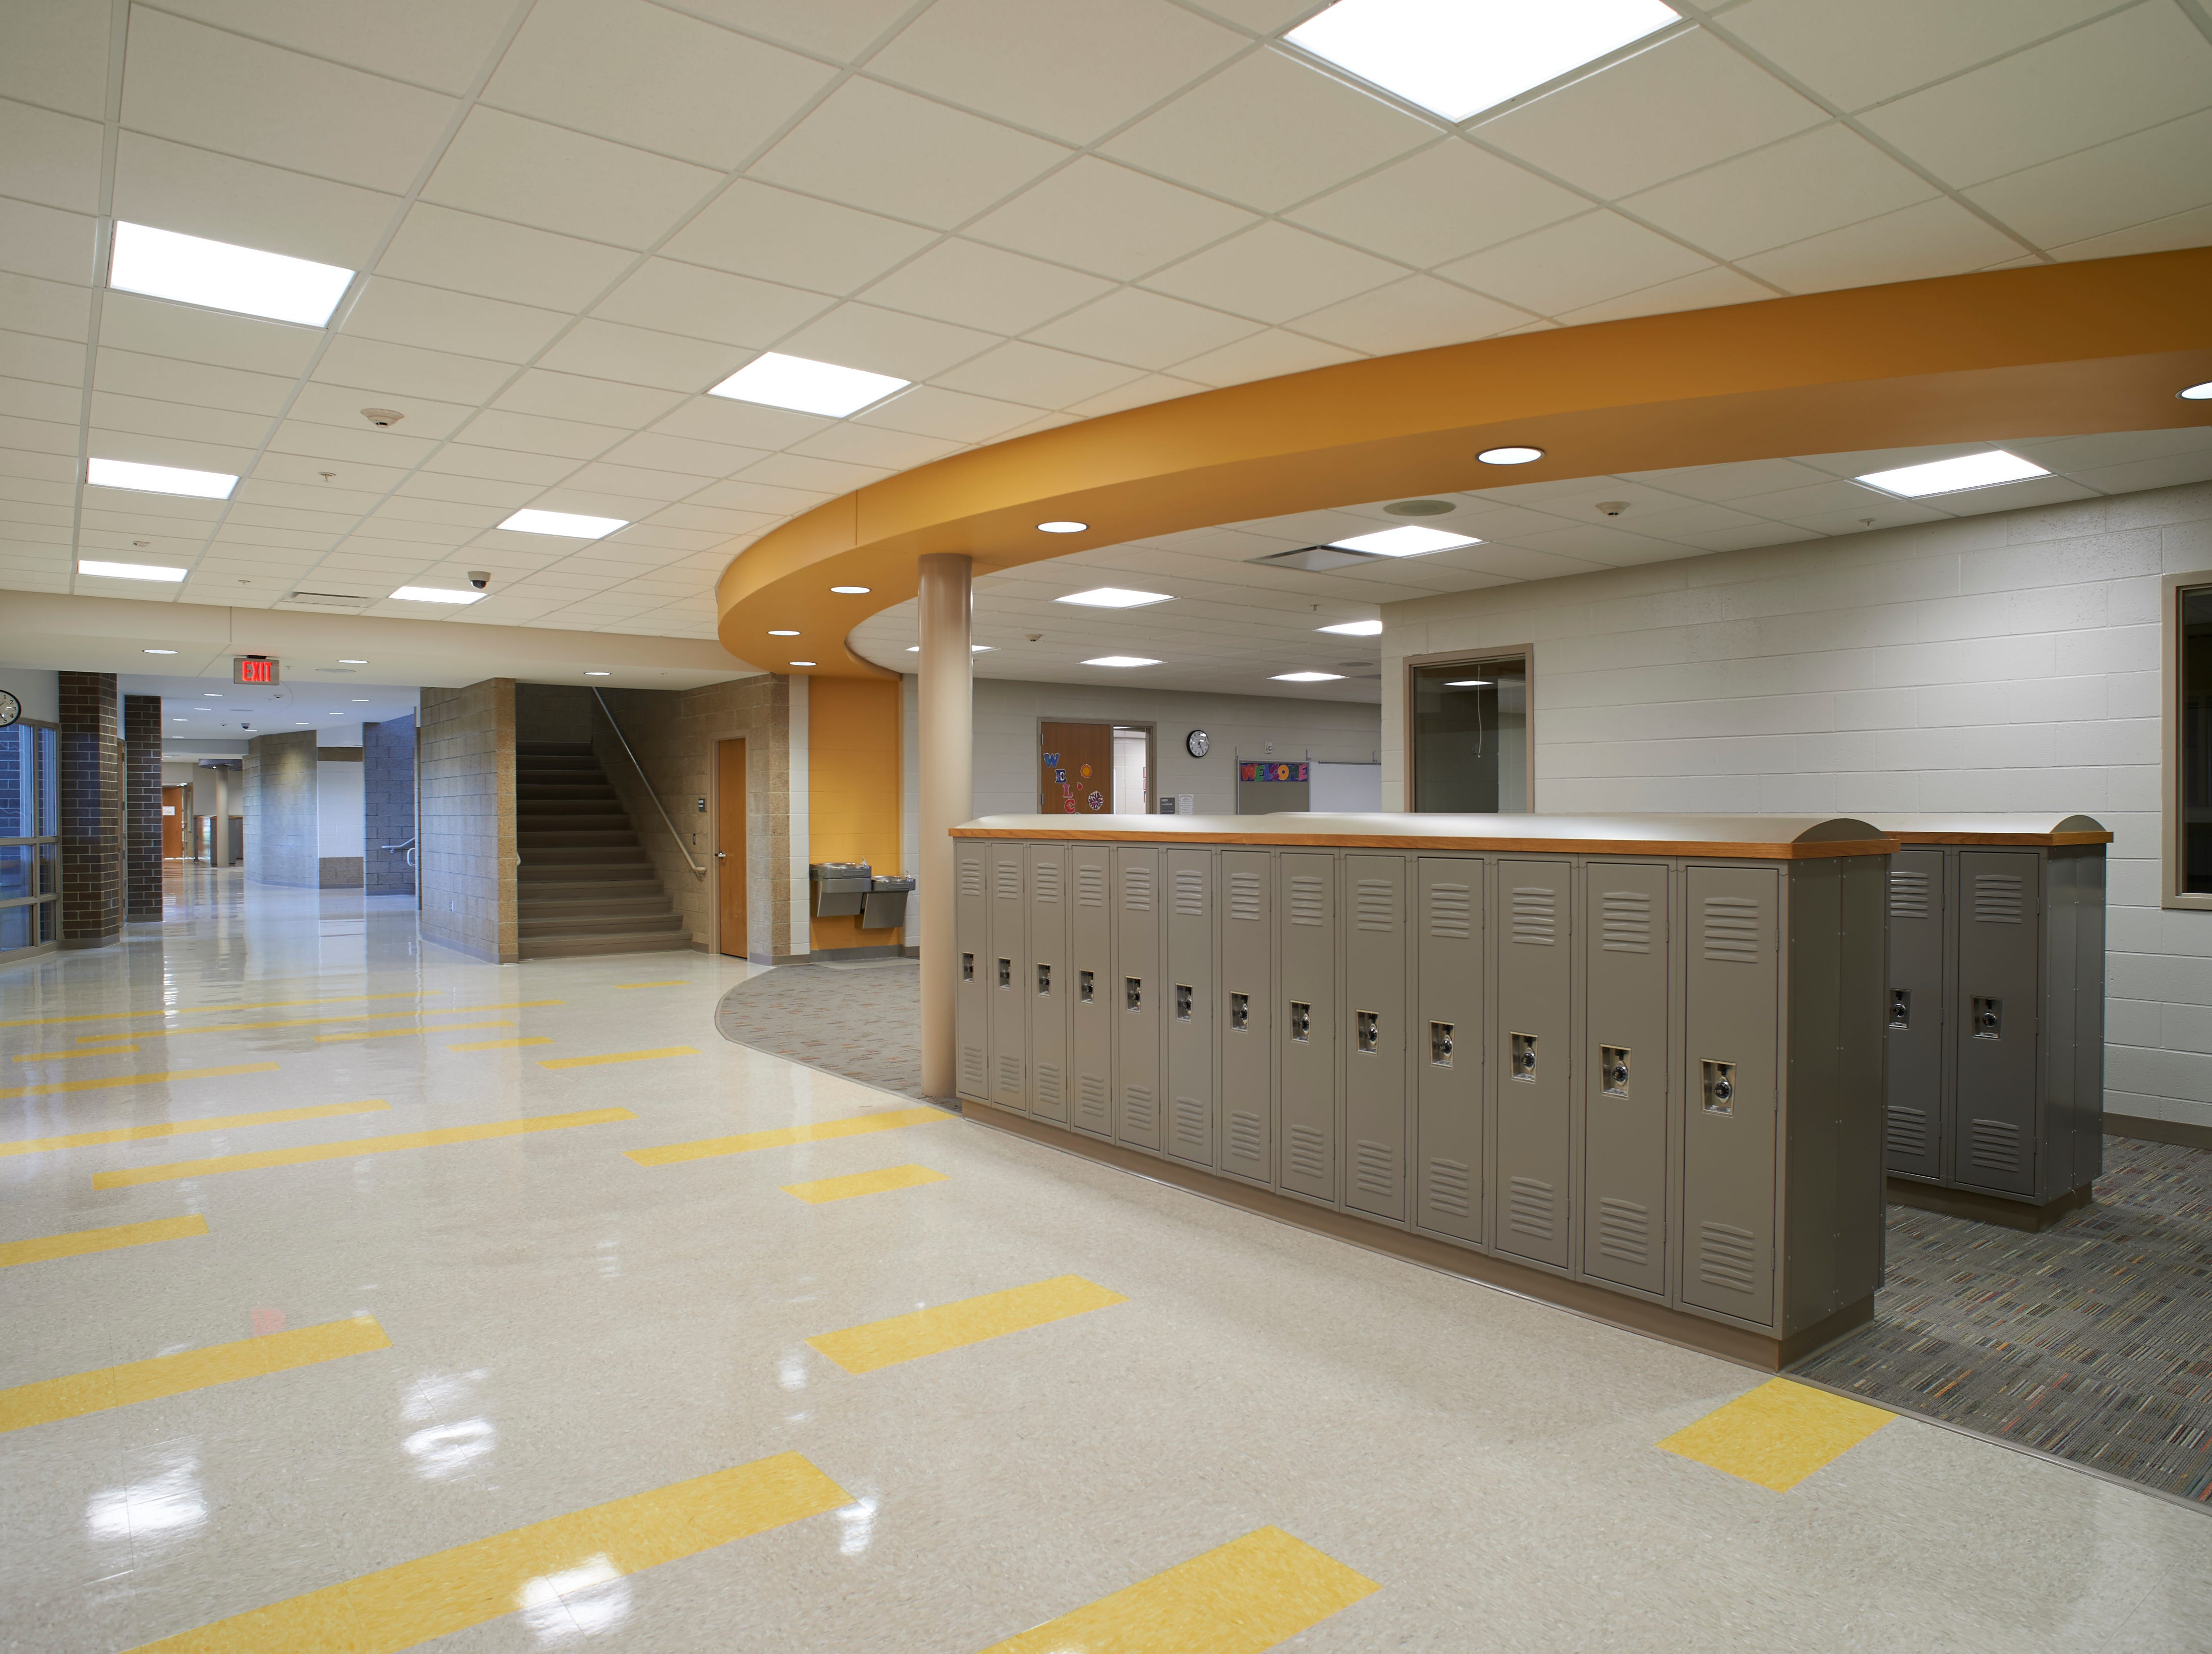 George McGovern Middle School in Sioux Falls.